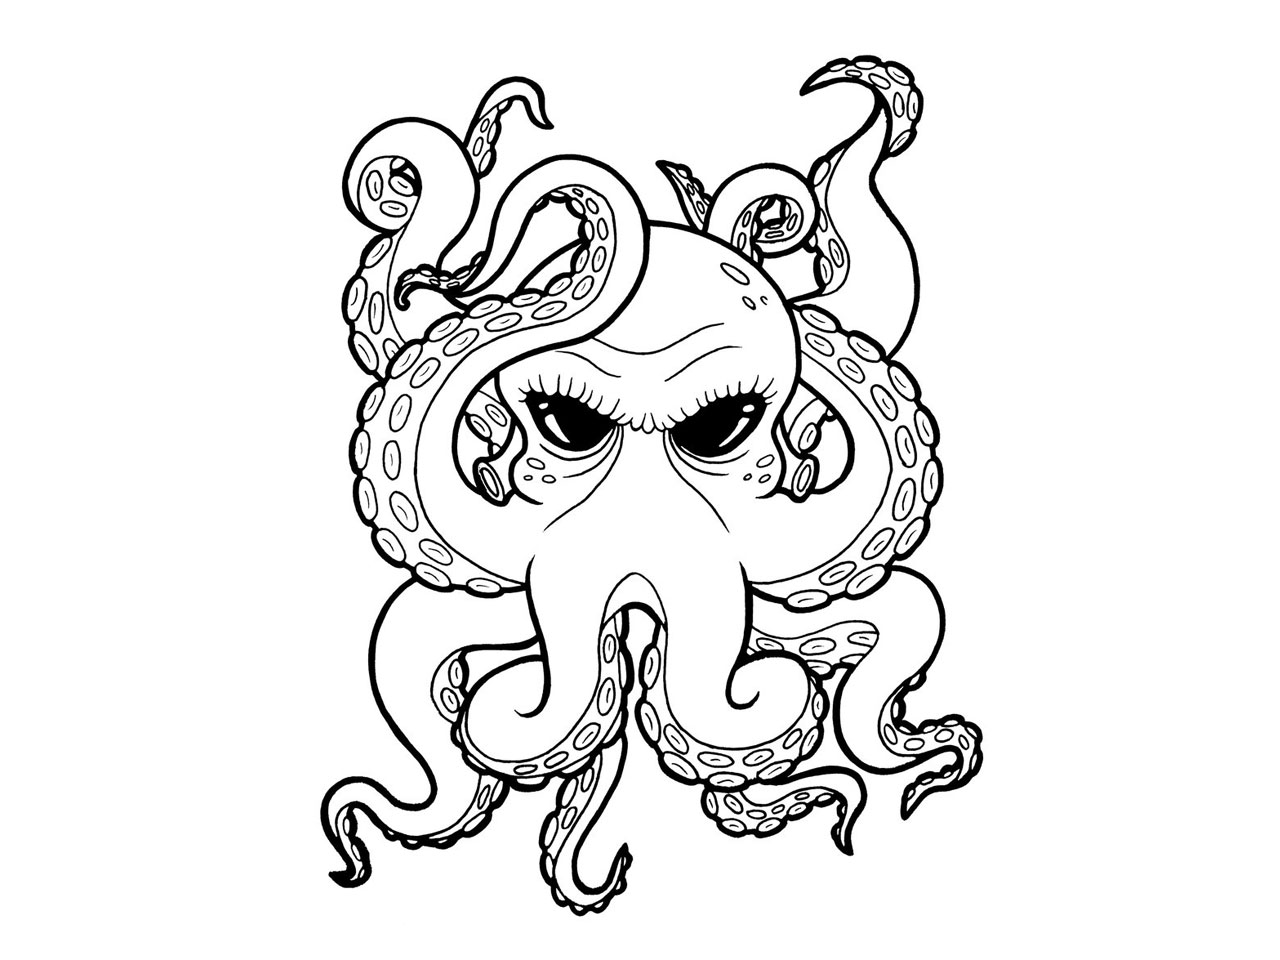 Cartoon black eyes octopus tattoo tattoo design ideas for Octopus drawing easy